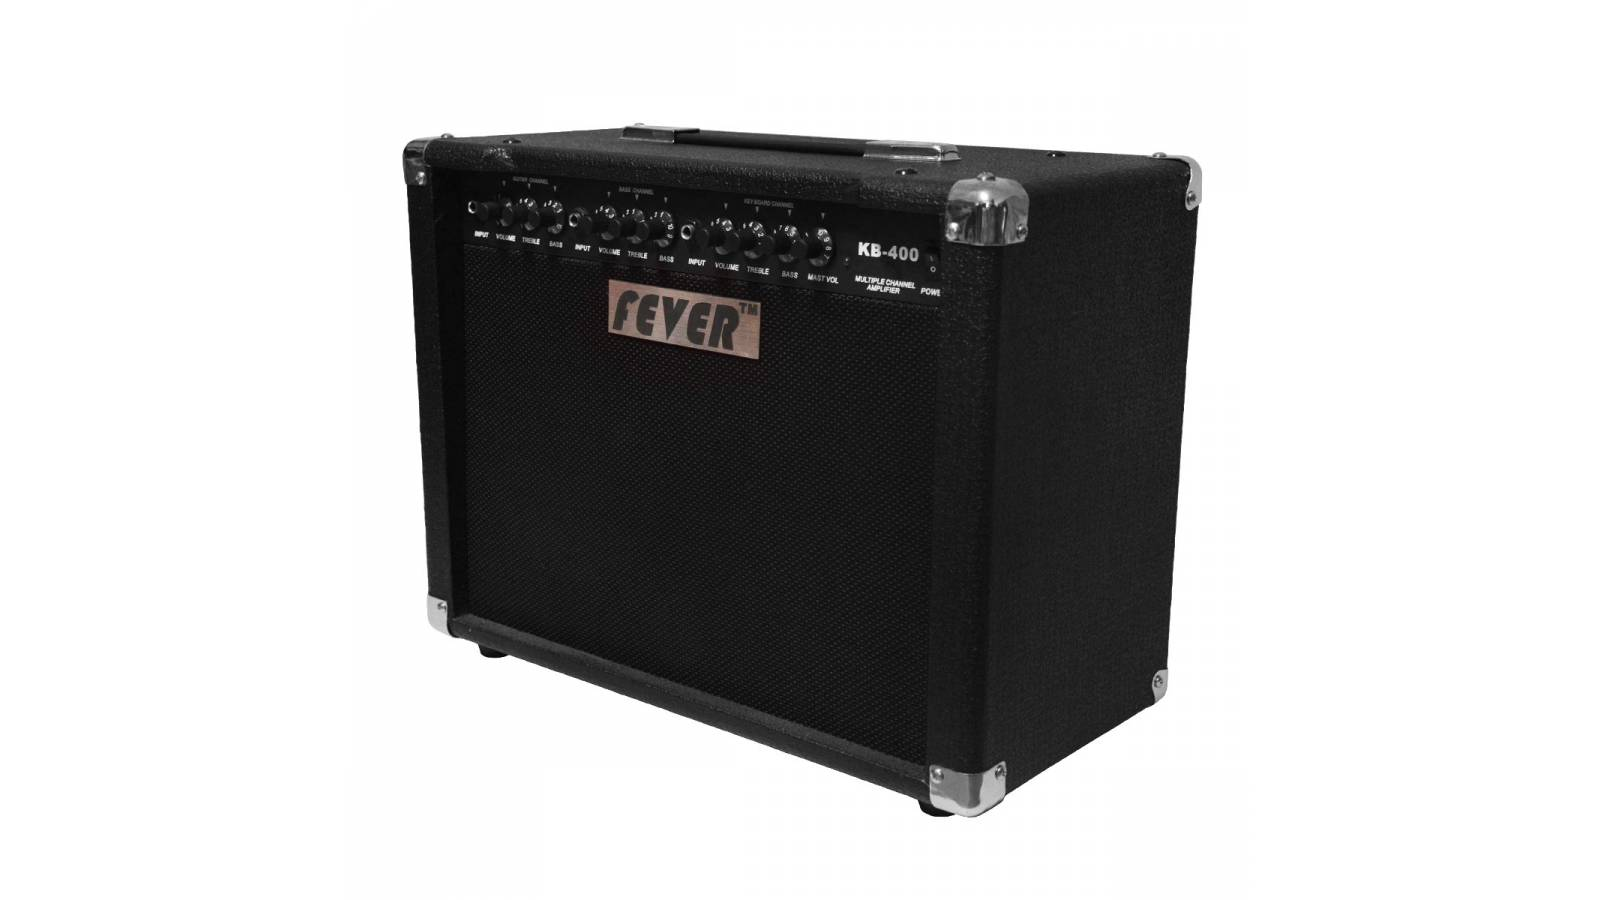 Amplificador Multiproposito 40 Watts Rms Fever KB-400